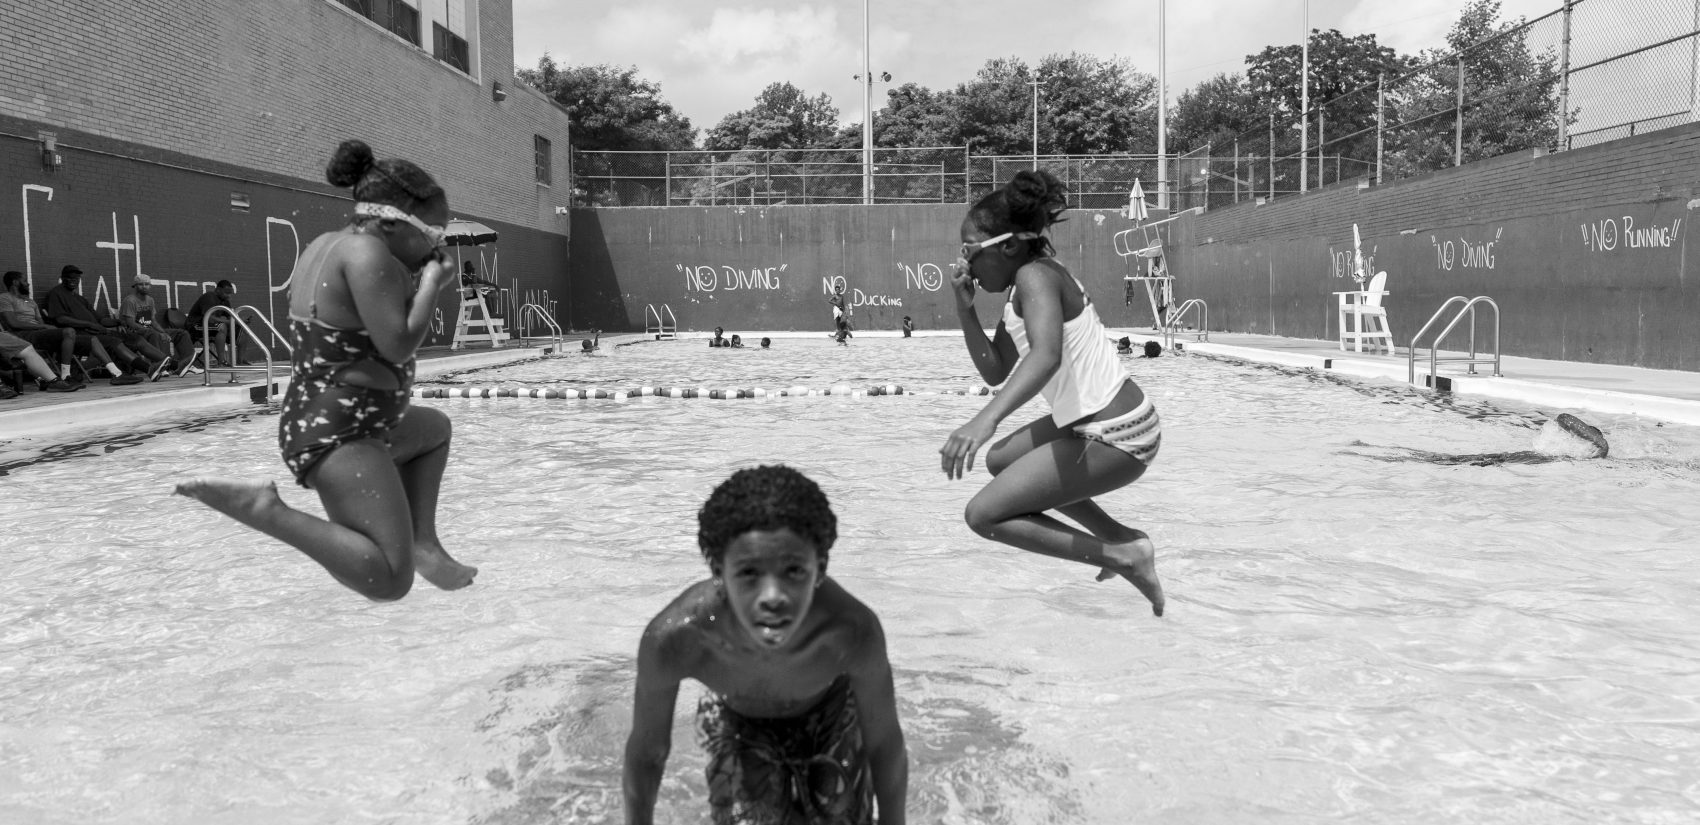 The pool at the Hank Gathers Rec Center. (Jessica Kourkounis for Keystone Crossroads)